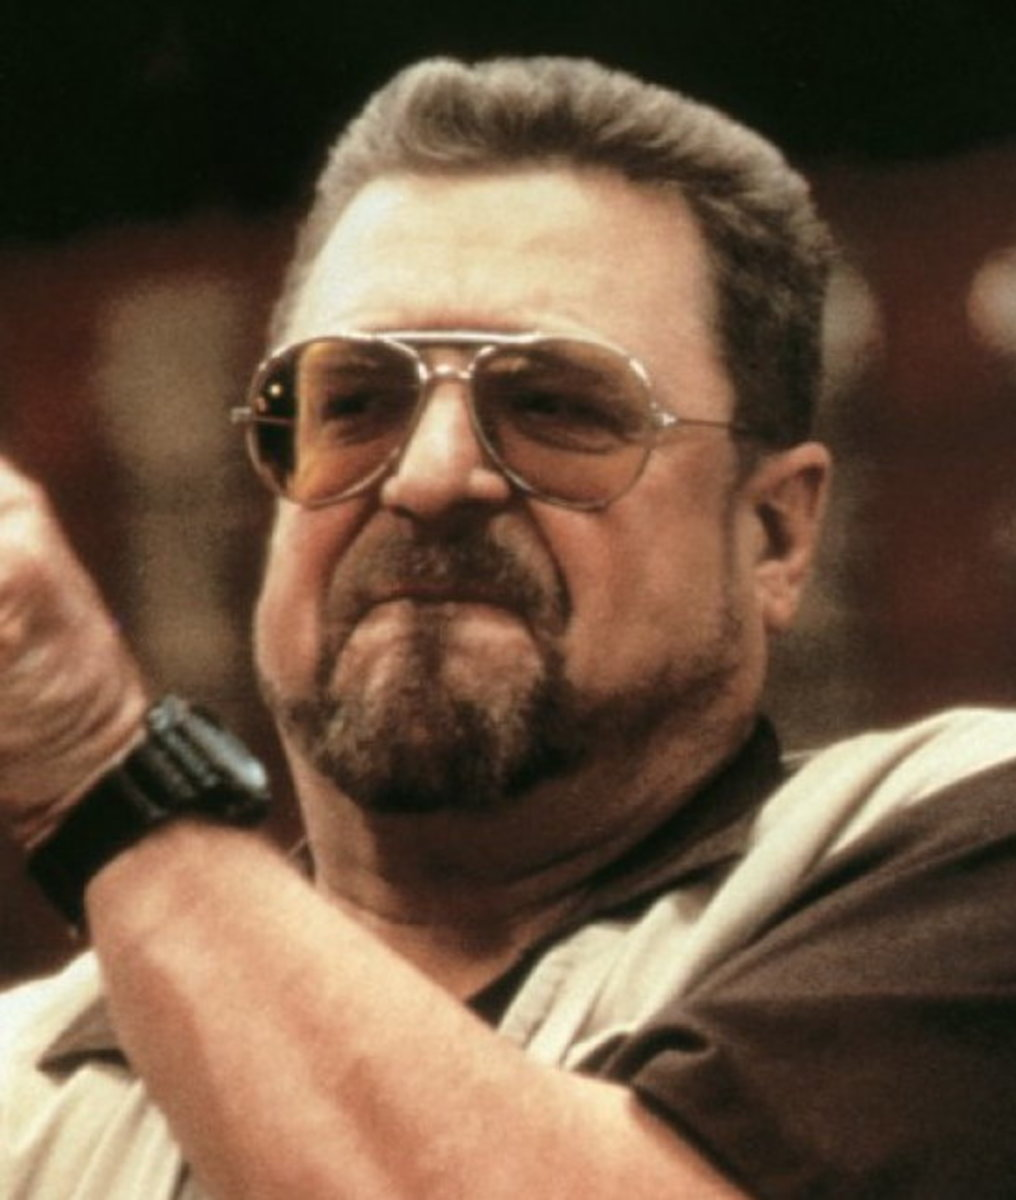 John Goodman with cool facial hair.